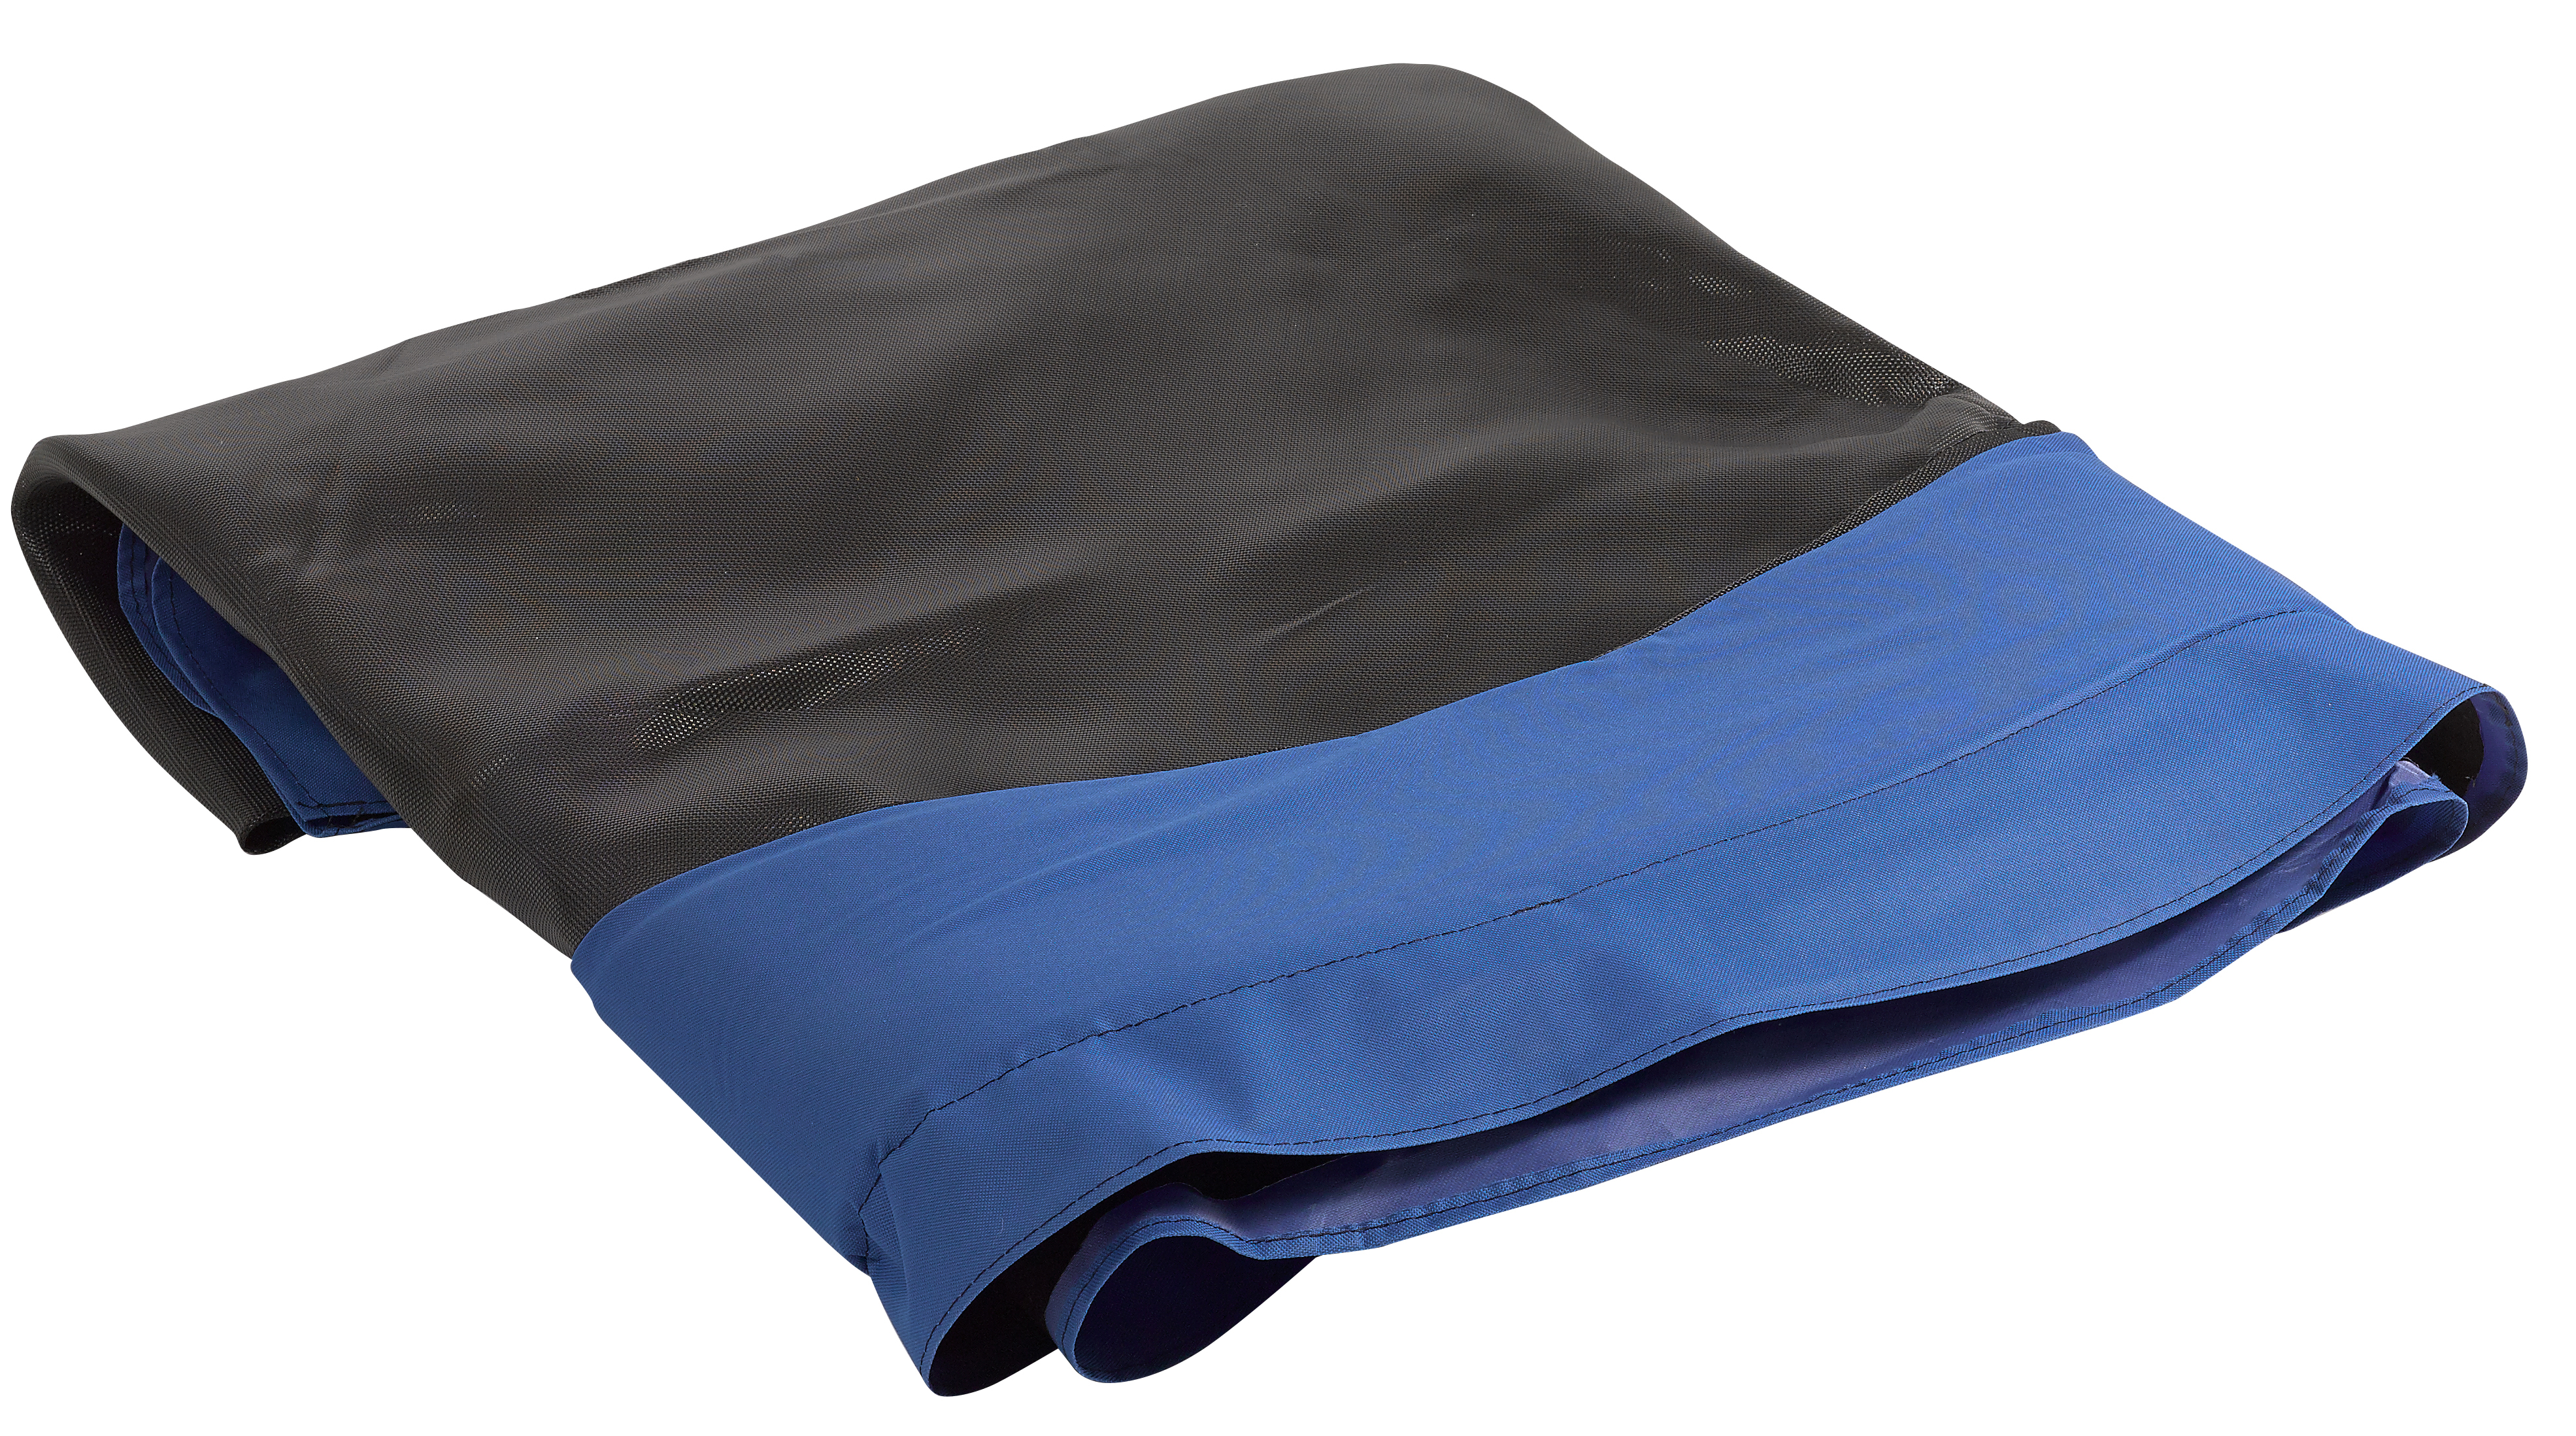 Trampoline Replacement Jumping Mat Wth Attached Safety Pad fits 7' Trampoline